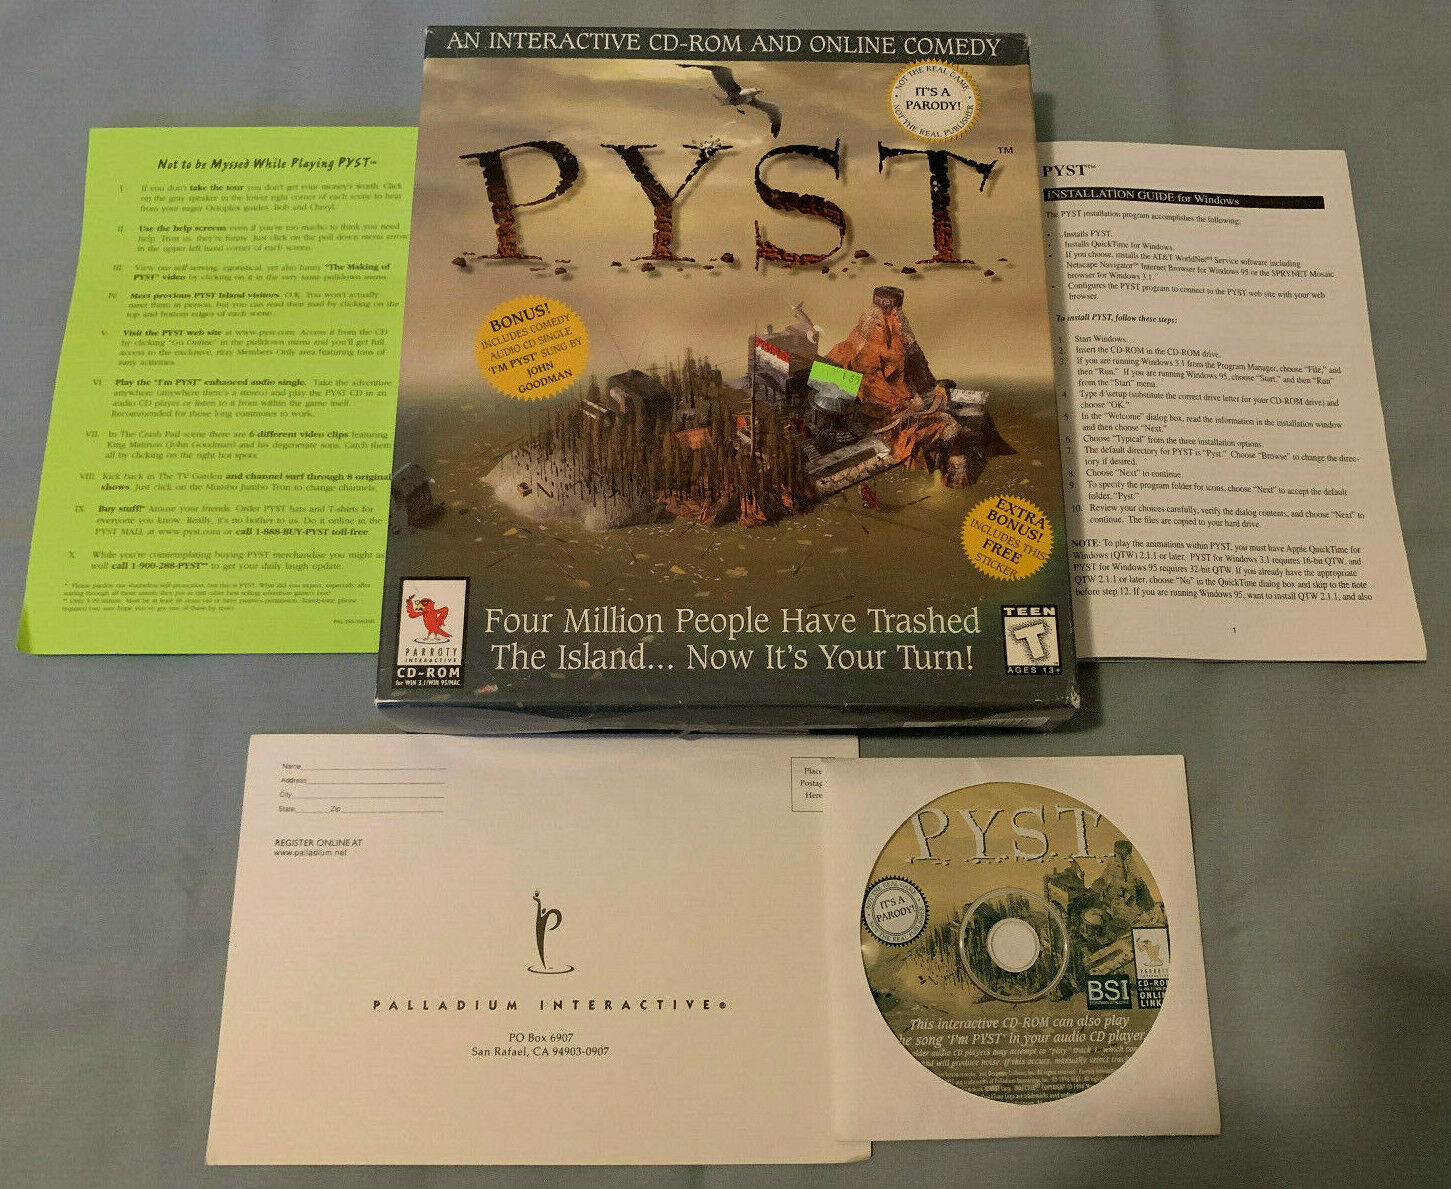 Computer Games - P.Y.S.T. PYST - PC/Mac Computer CD Myst Parody Video Game - COMPLETE in Big Box!